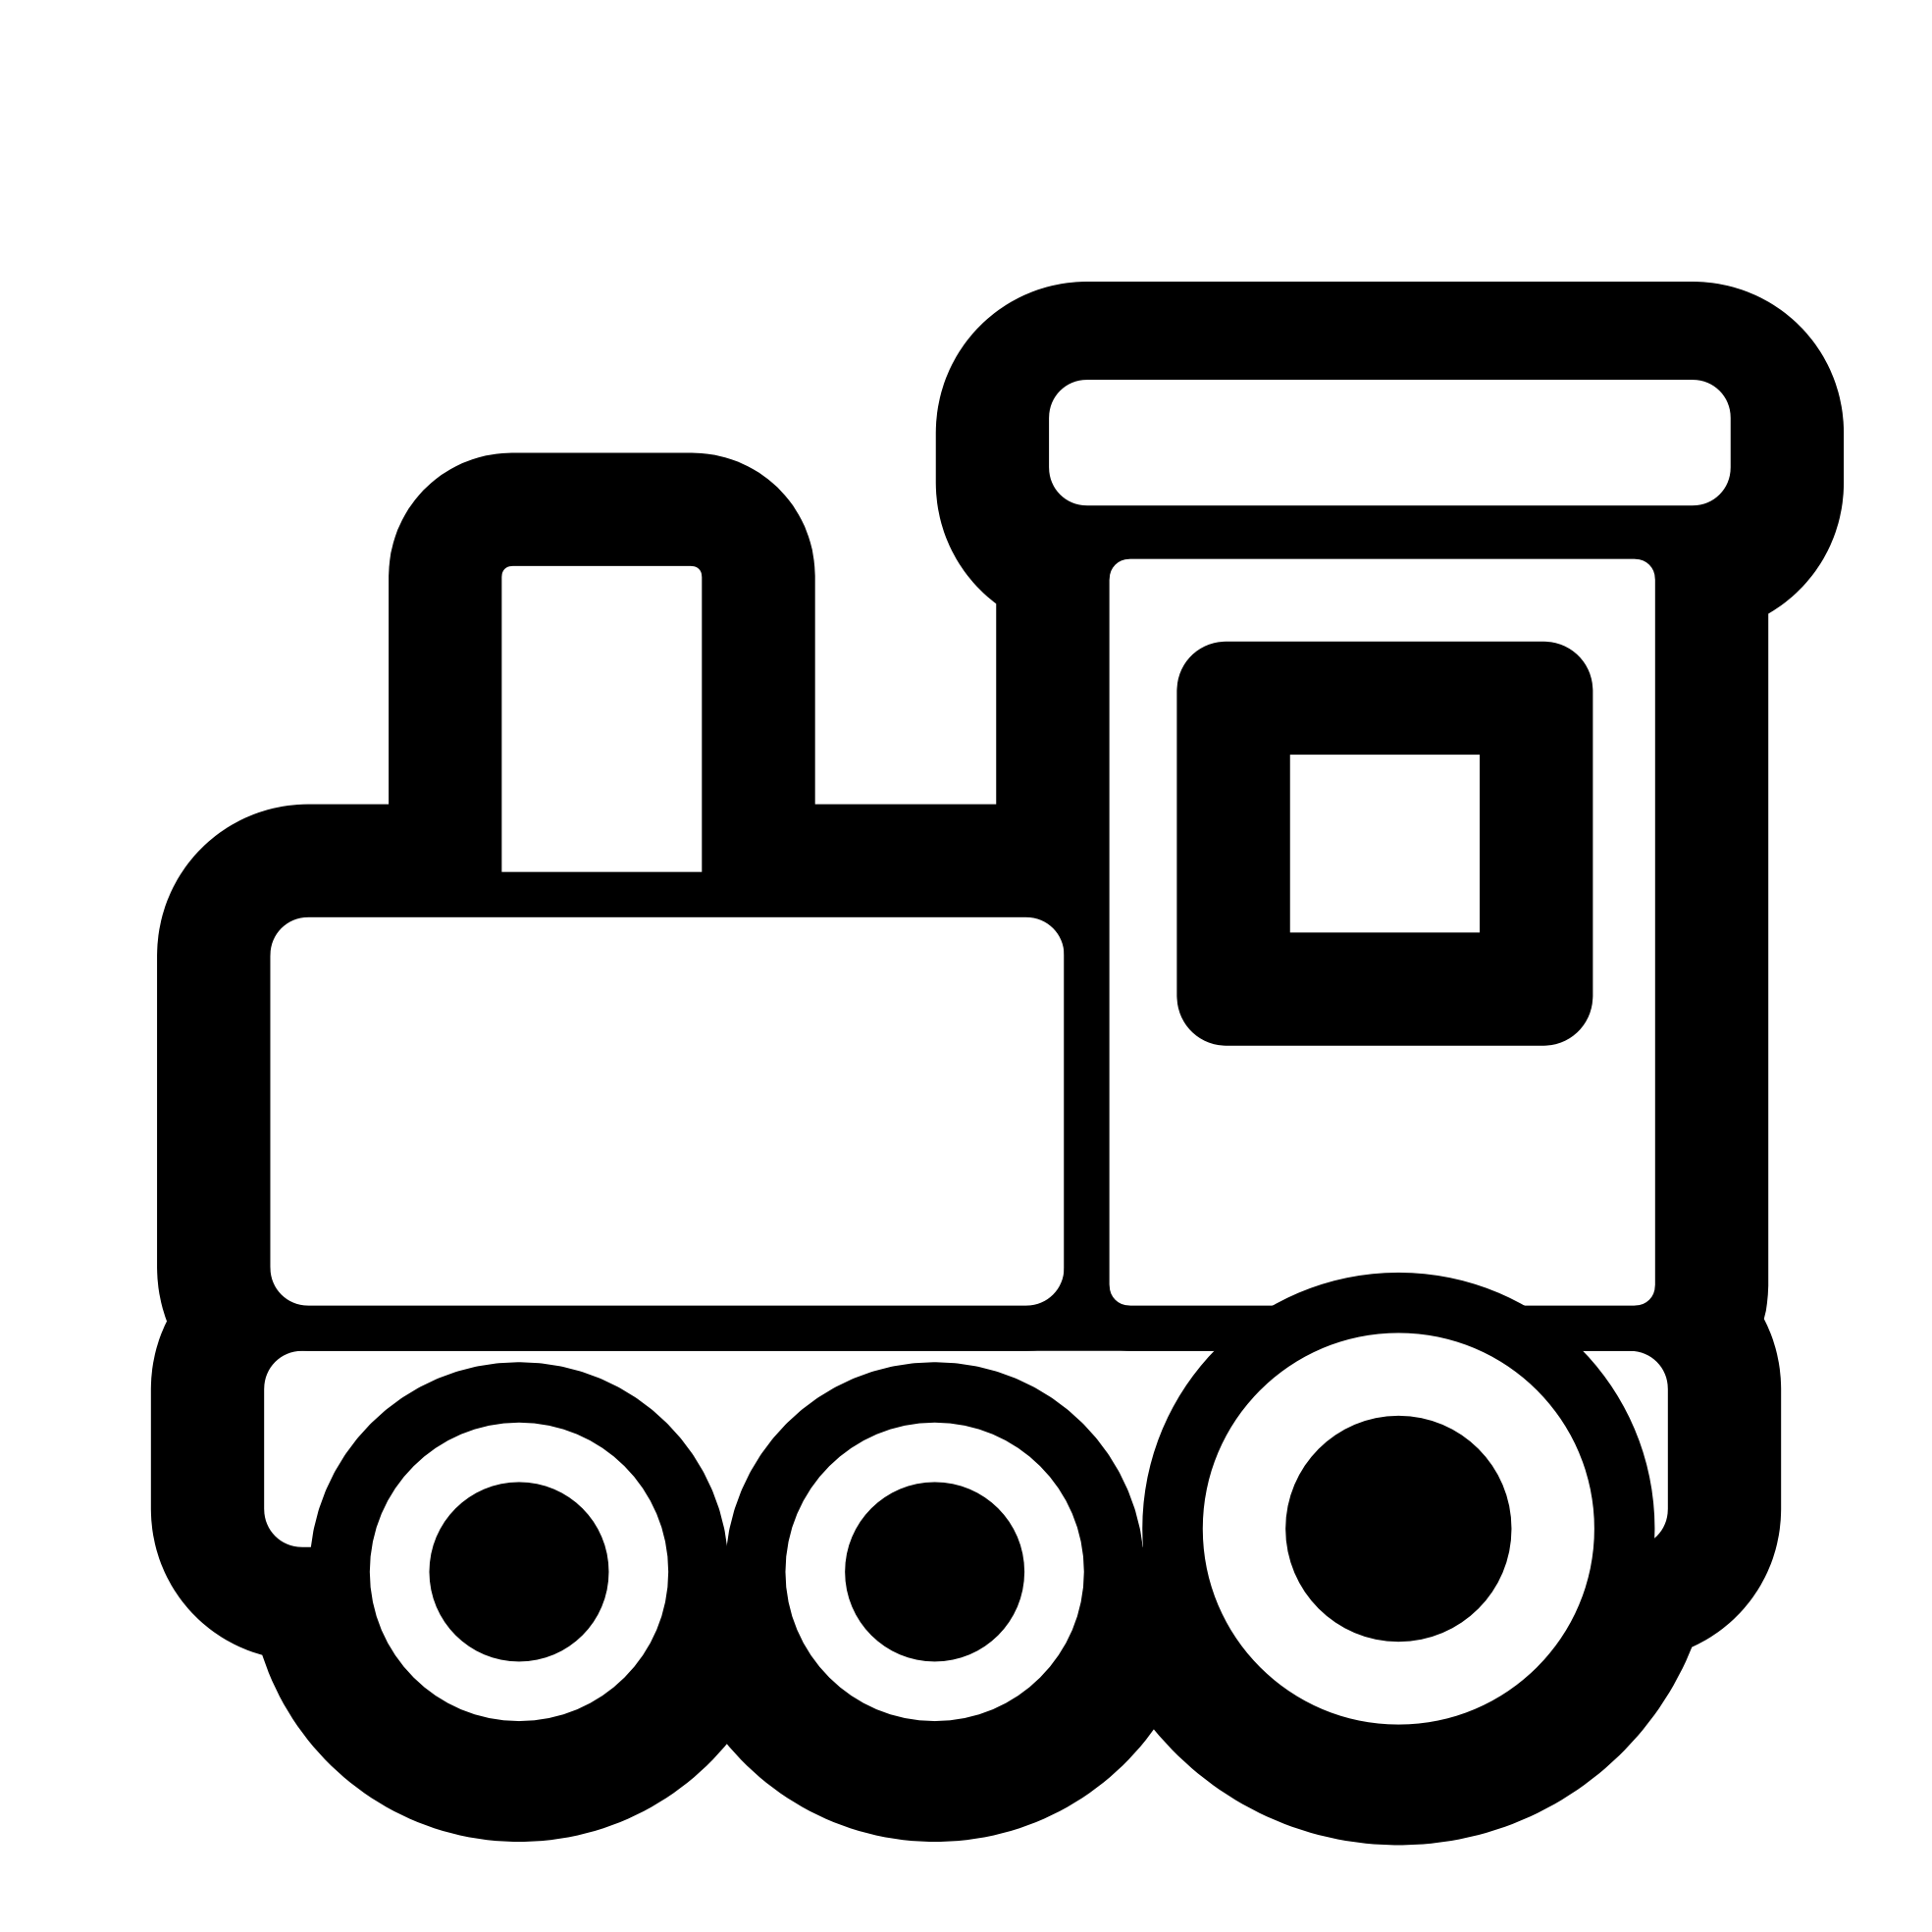 clip art free stock Caboose clipart train cart. Transparent background free on.